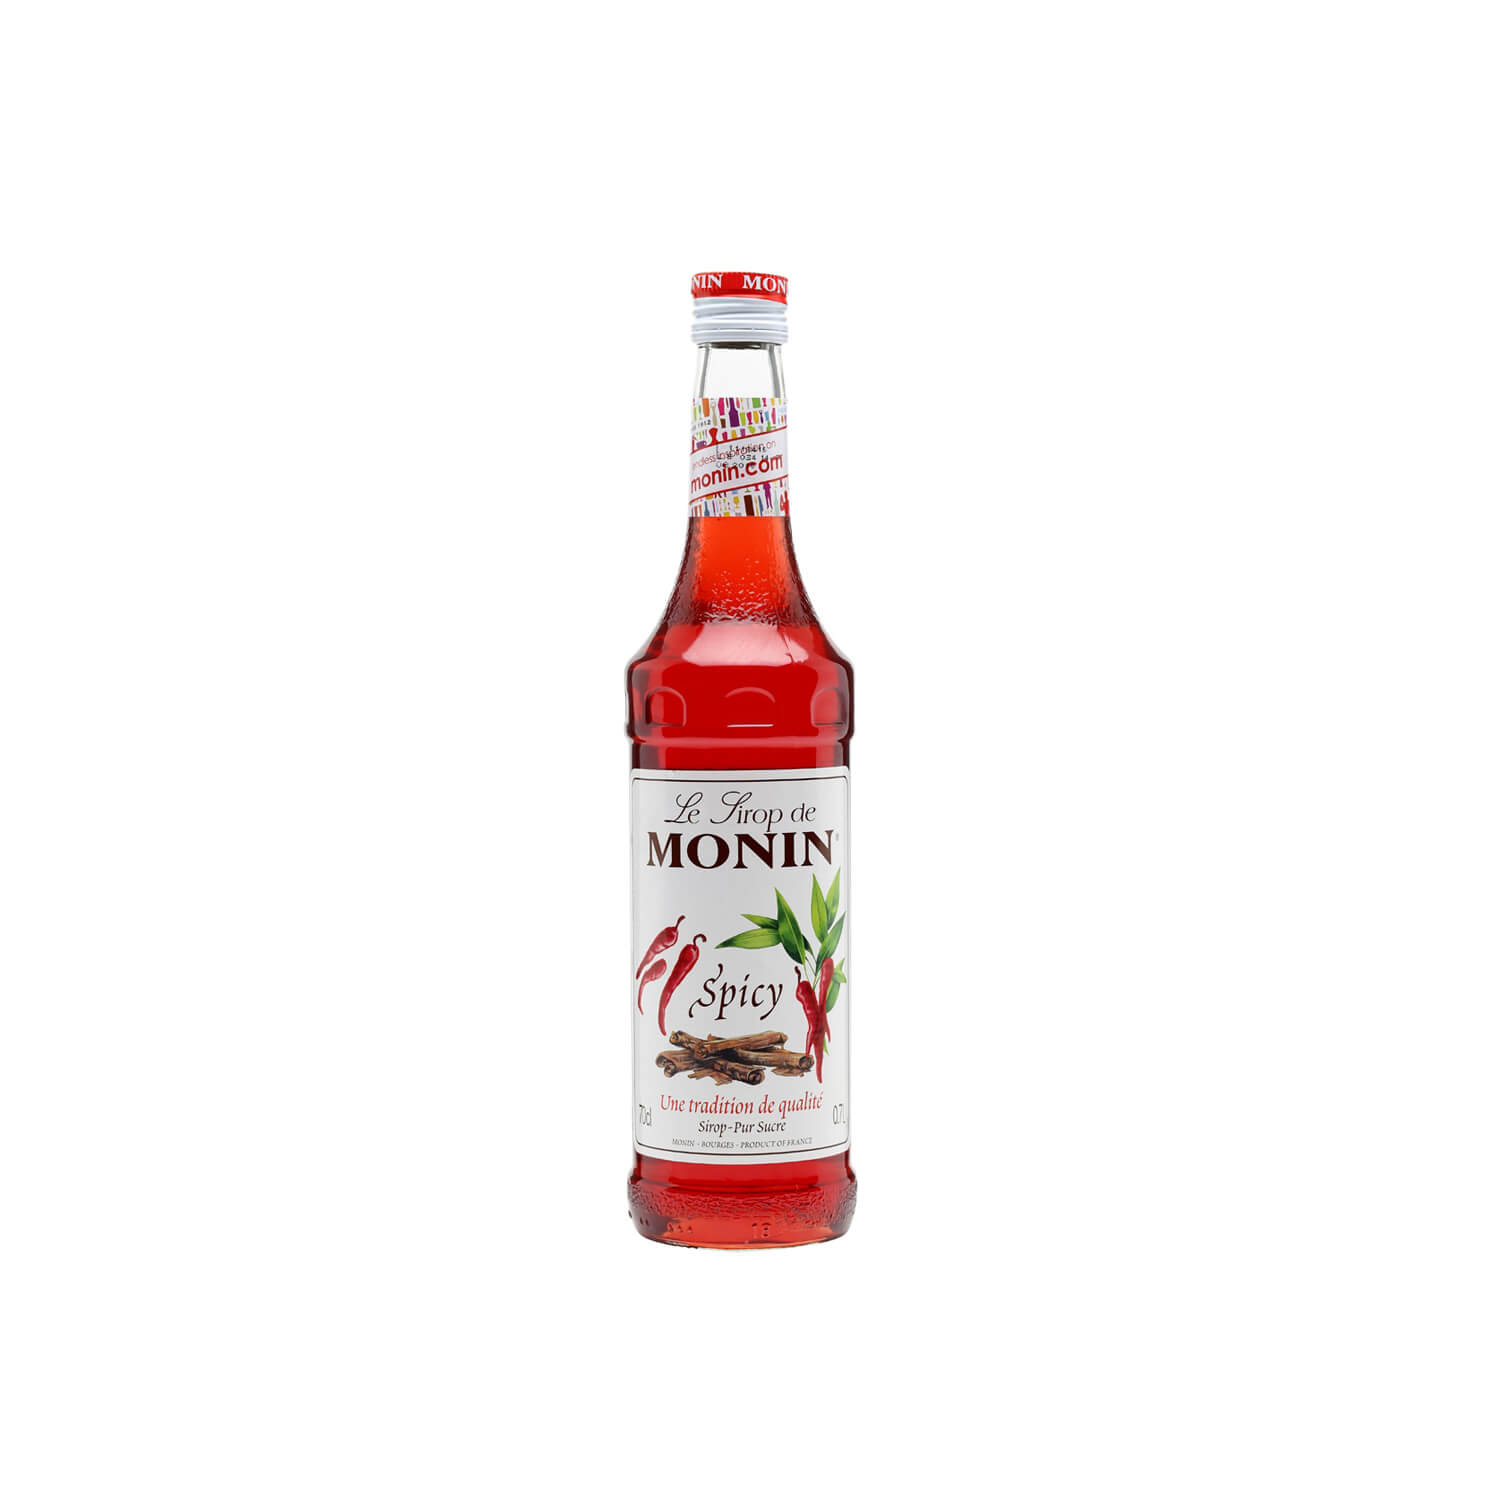 Monin - Siroop - Spicy - 700 ml